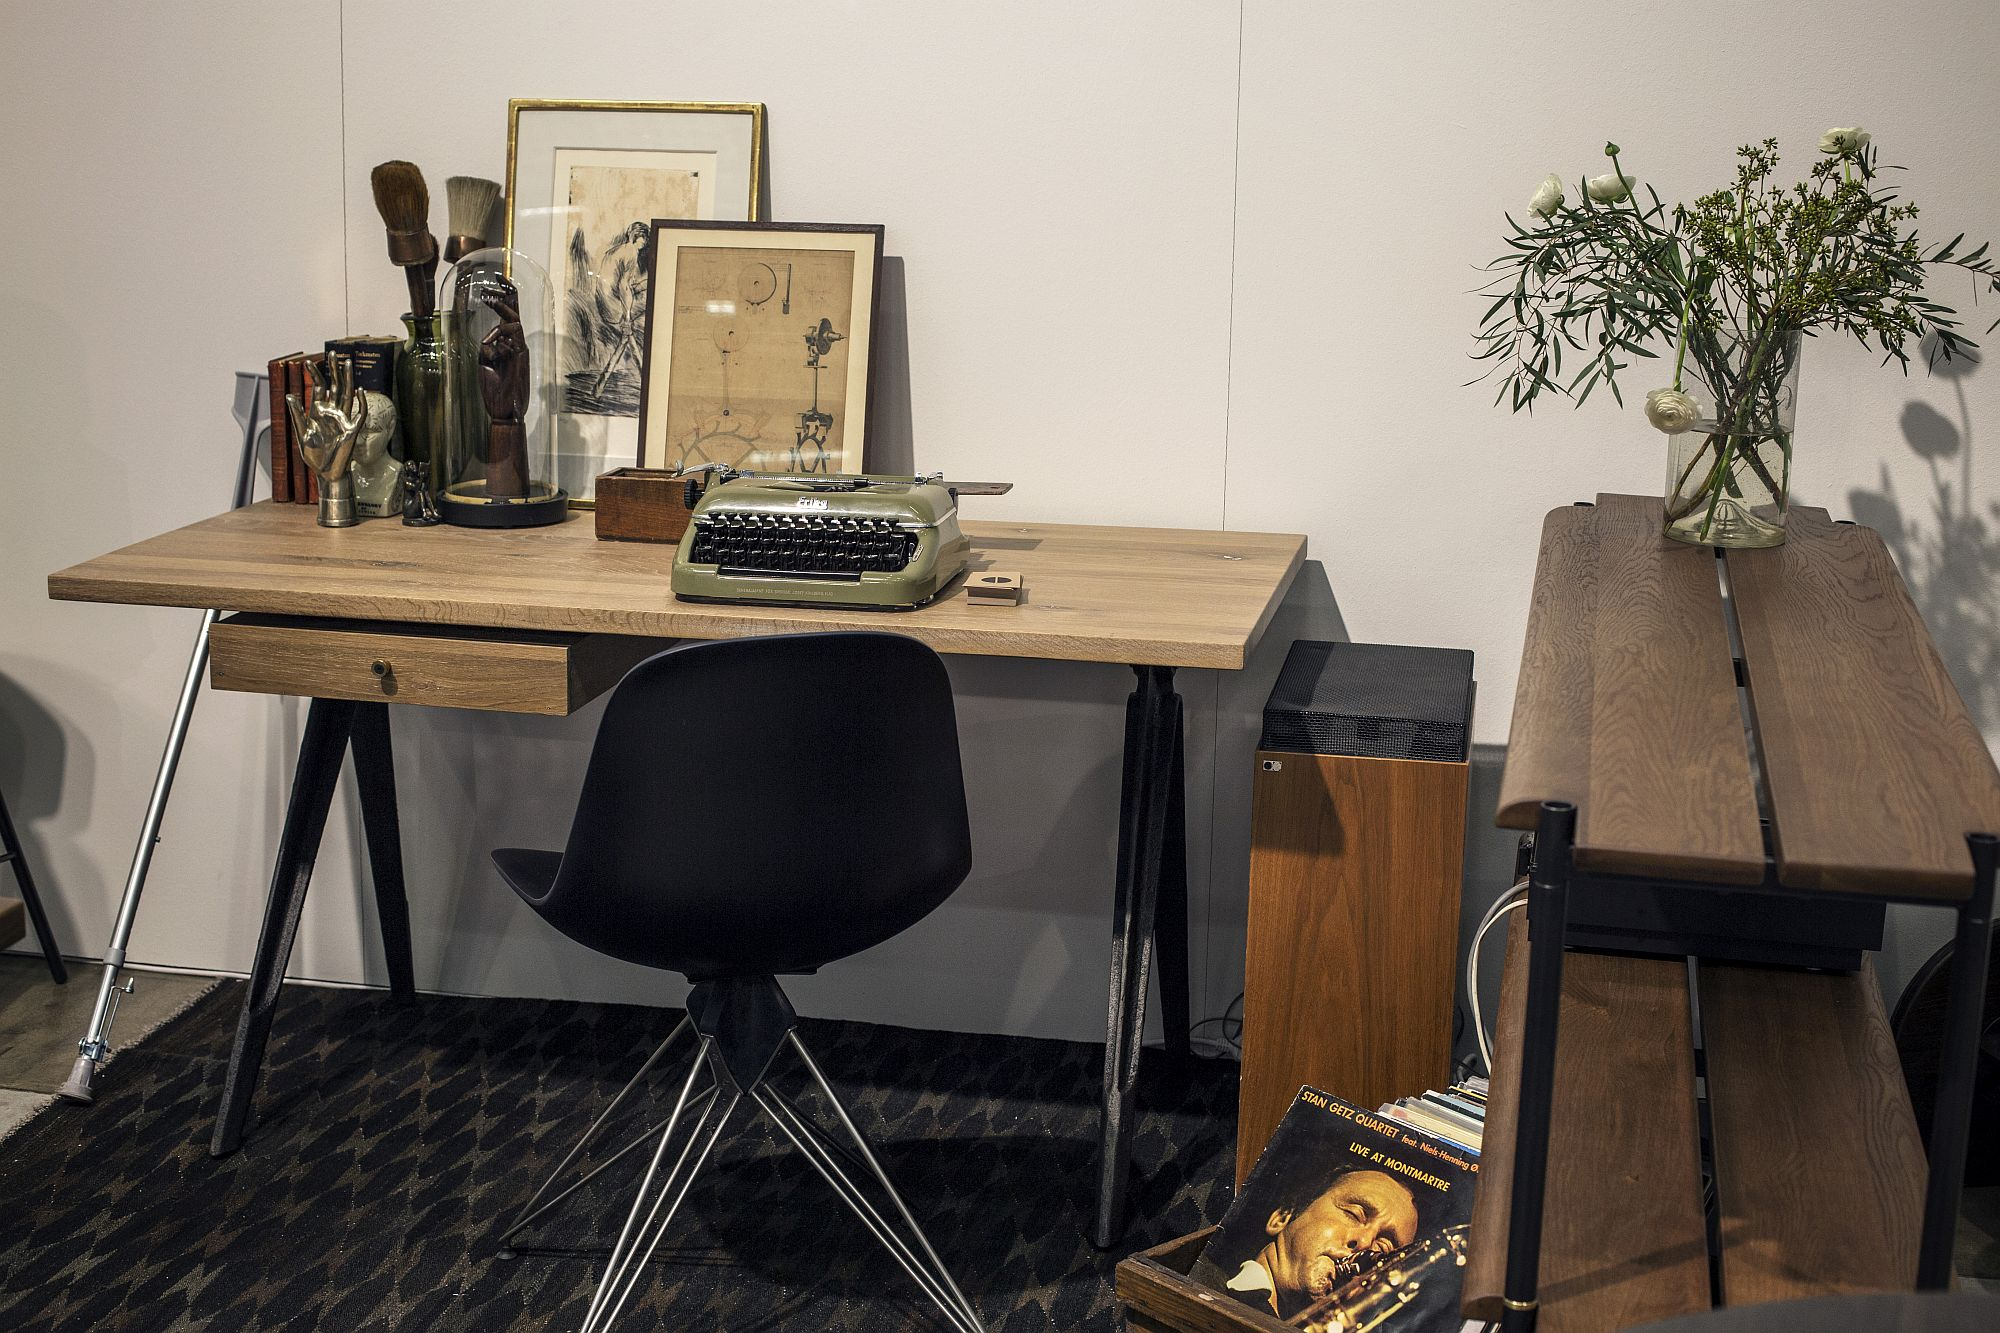 Slim and stylish worksdesk in wood and metal